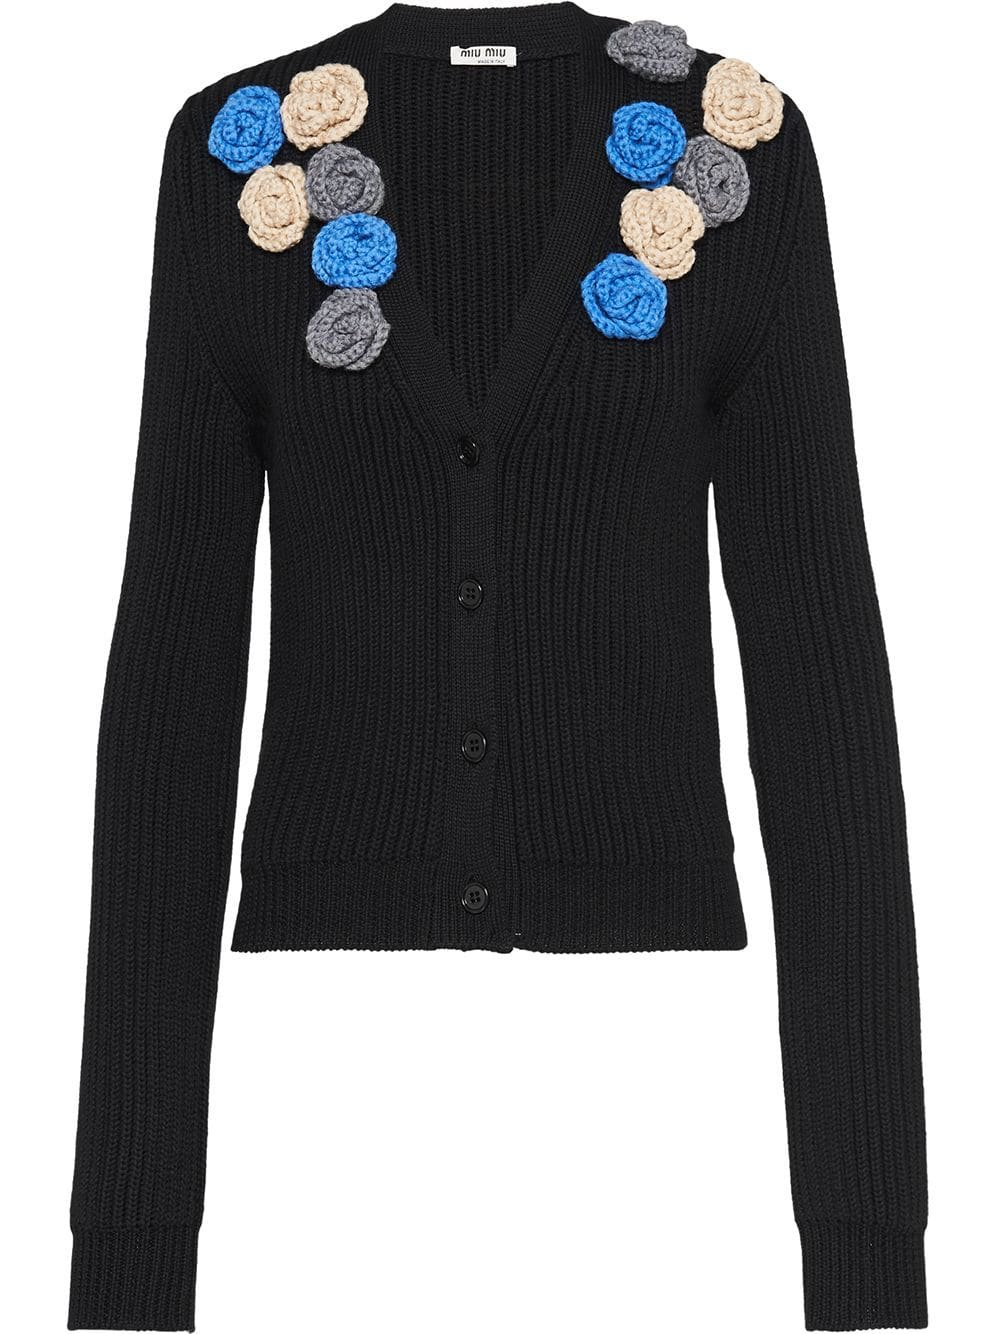 Black Miu Miu Wool Cardigan | Farfetch.com